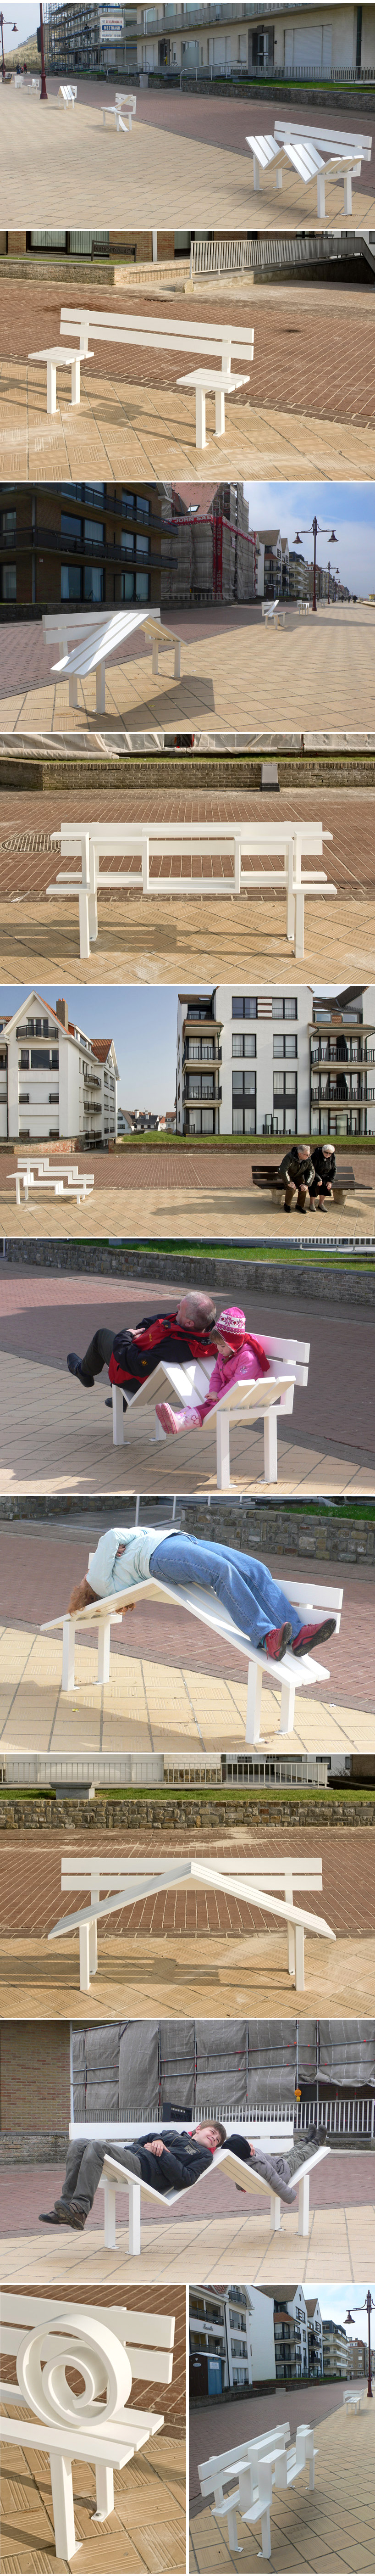 Jeppe Hein: Modified Social Benches—Danish artist Jeppe Hein . . . . First Prize - Most Uncomfortable Bench Series